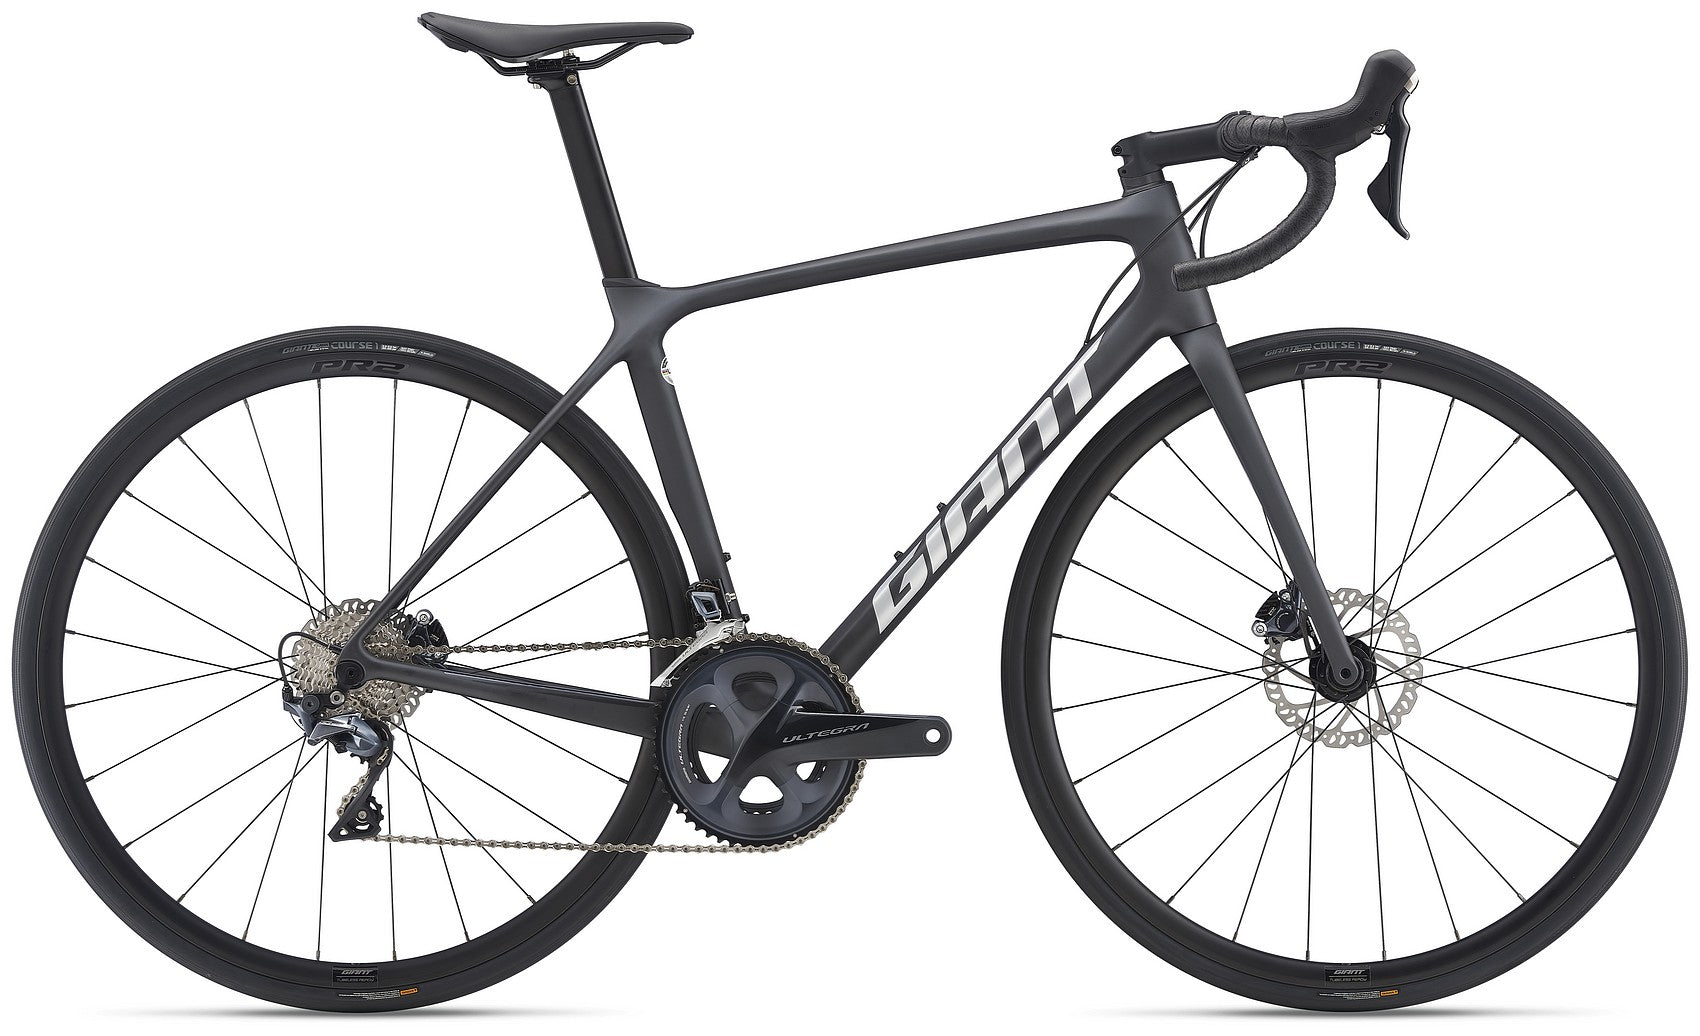 GIANT 2021 TCR ADVANCED DISC SERIES